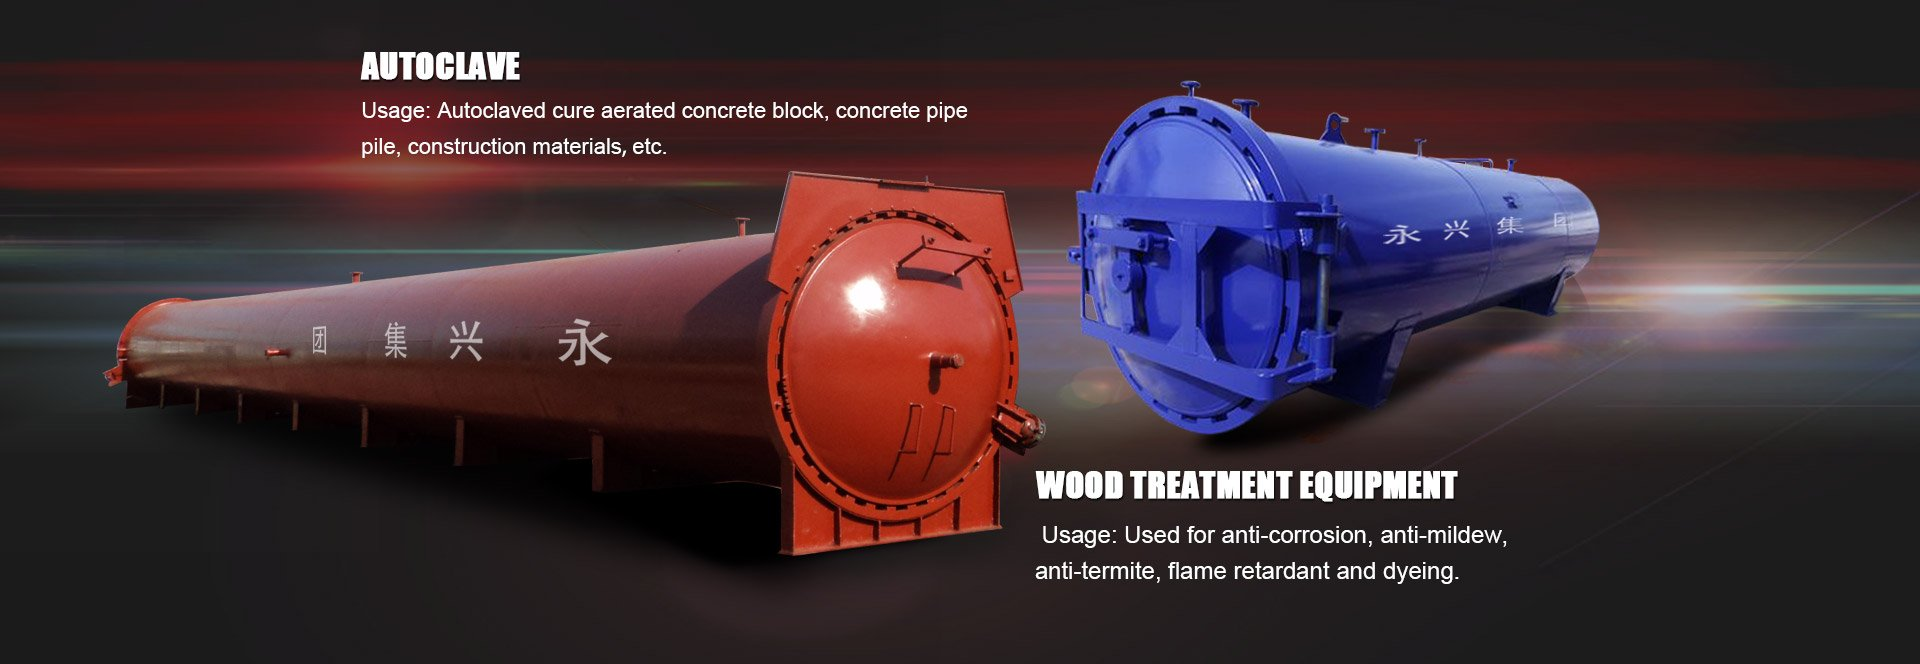 Wood Treatment Equipment